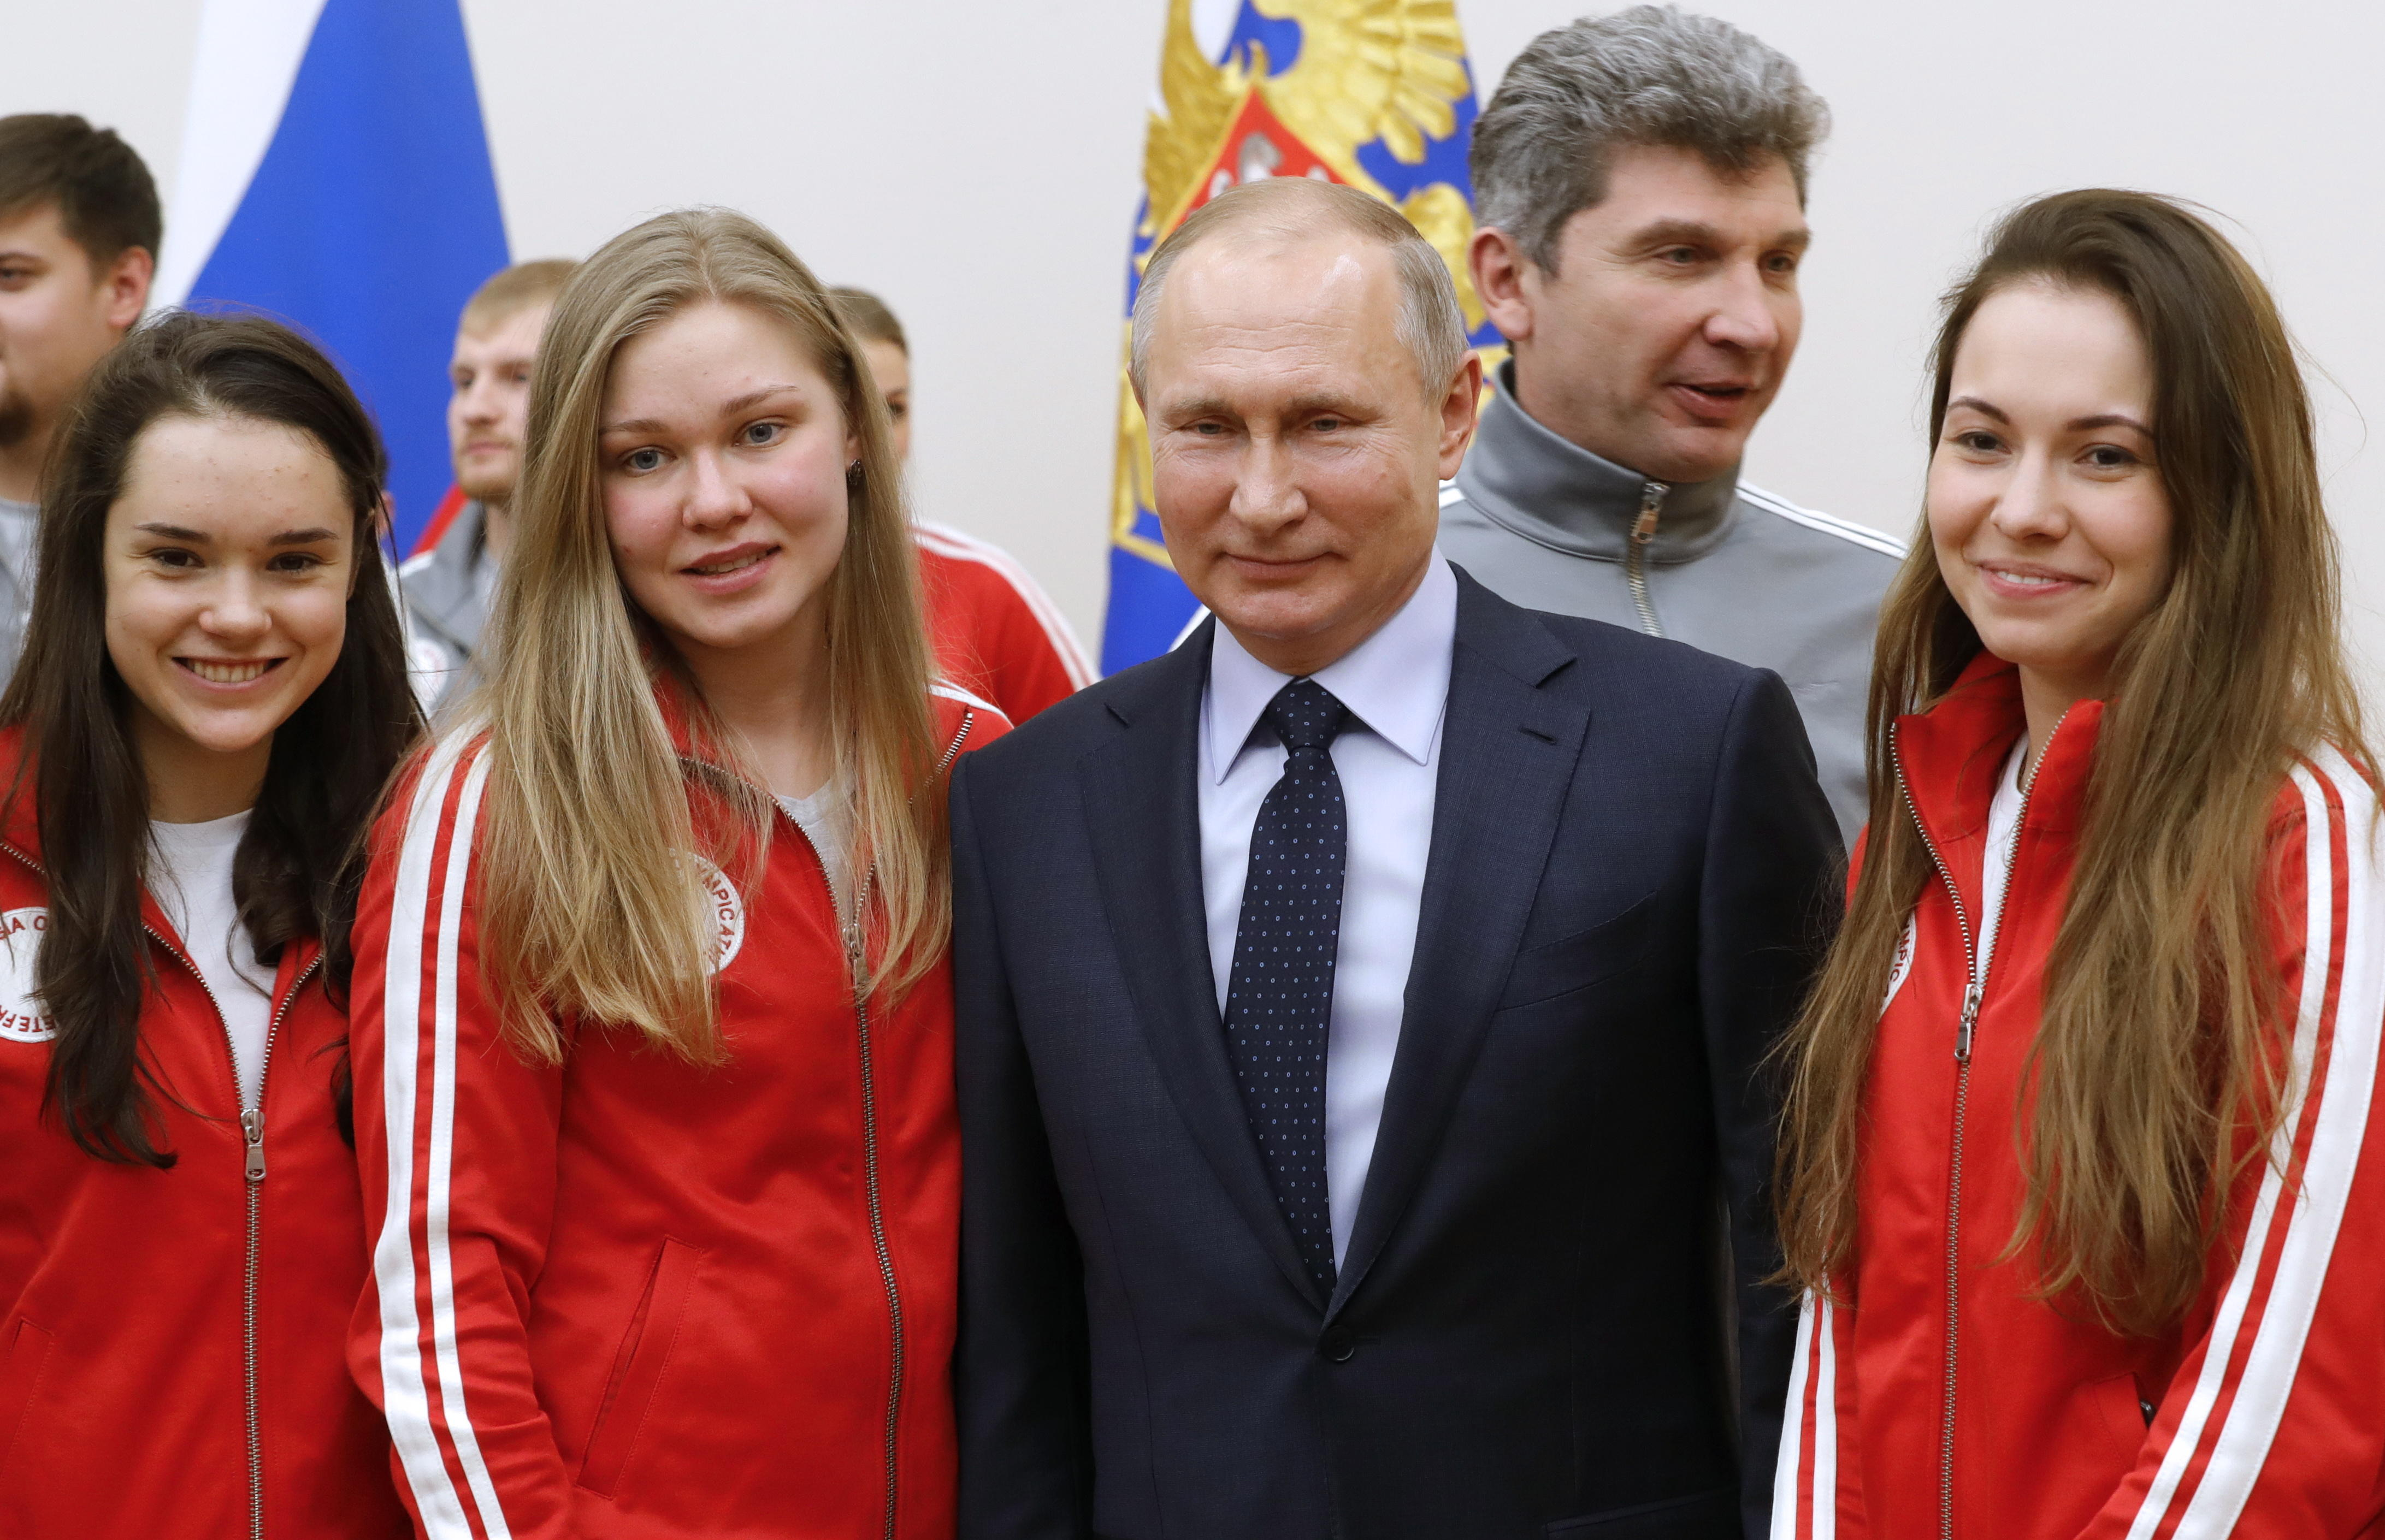 President Putin meets with Russian athletes competing in 2018 Pyeongchang Olympics